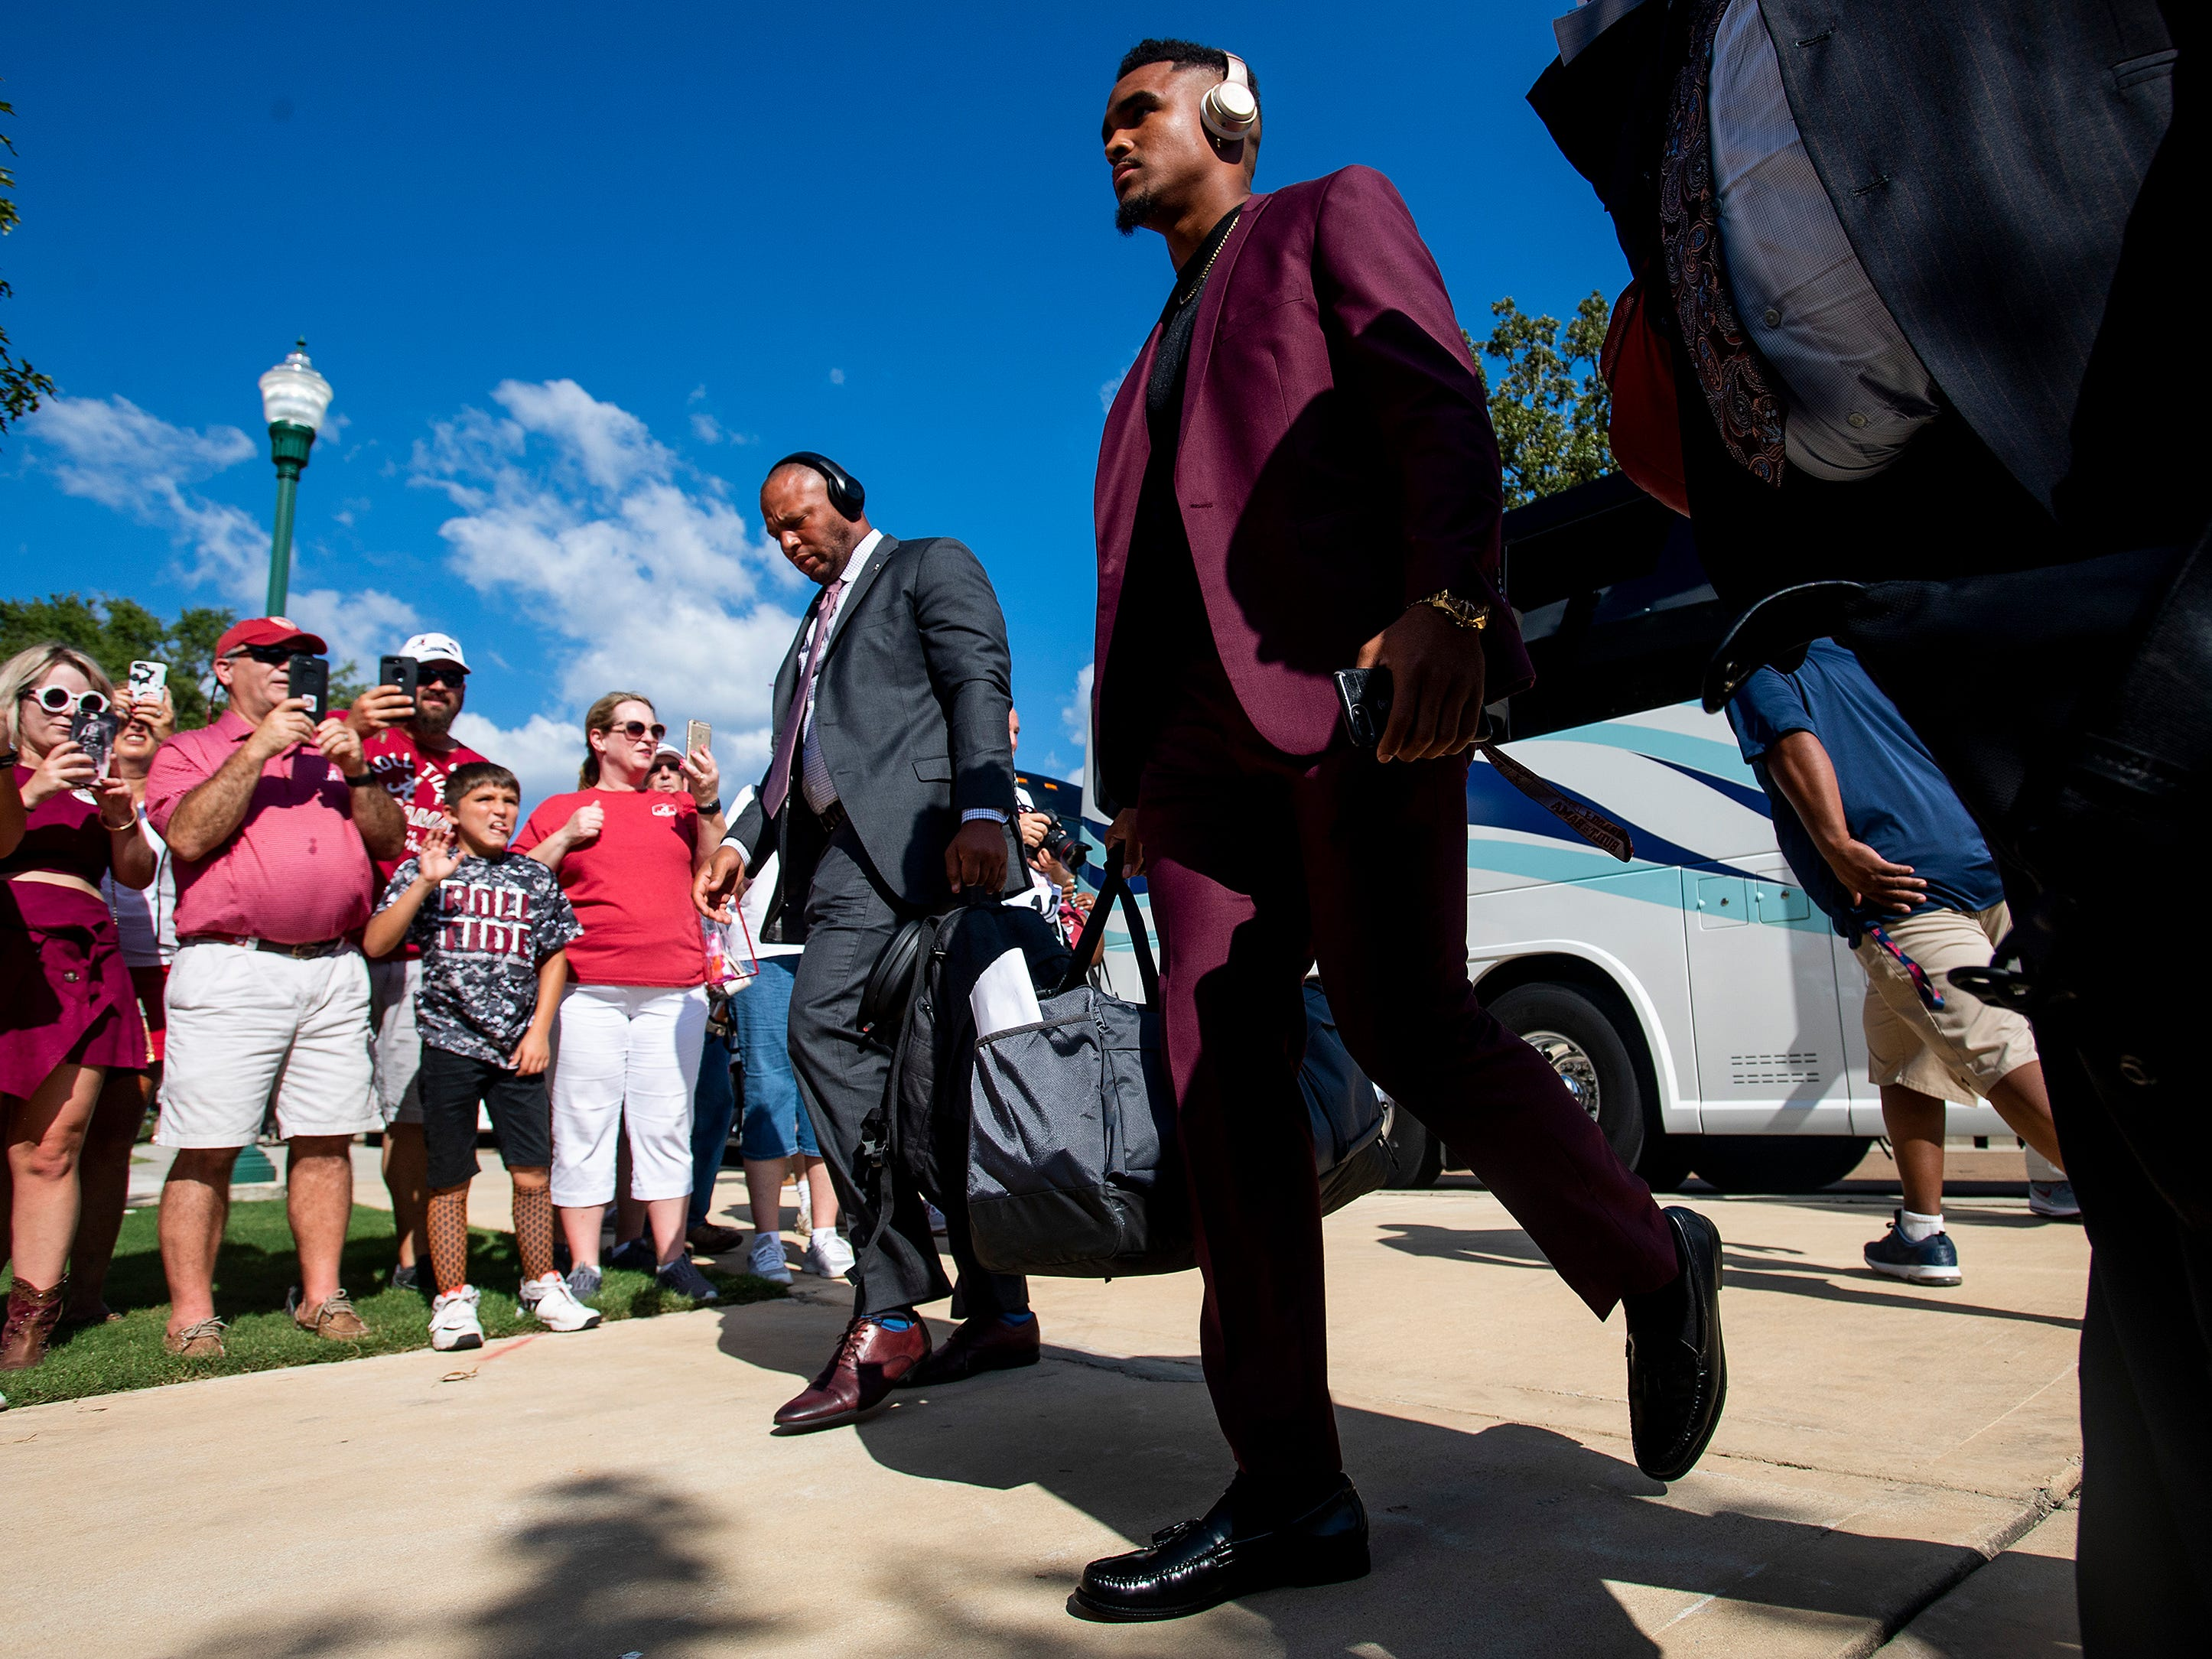 Alabama quarterback Jalen Hurts (2) as the Alabama football team arrives on the Ole Miss campus in Oxford, Ms., on Saturday September 15, 2018.